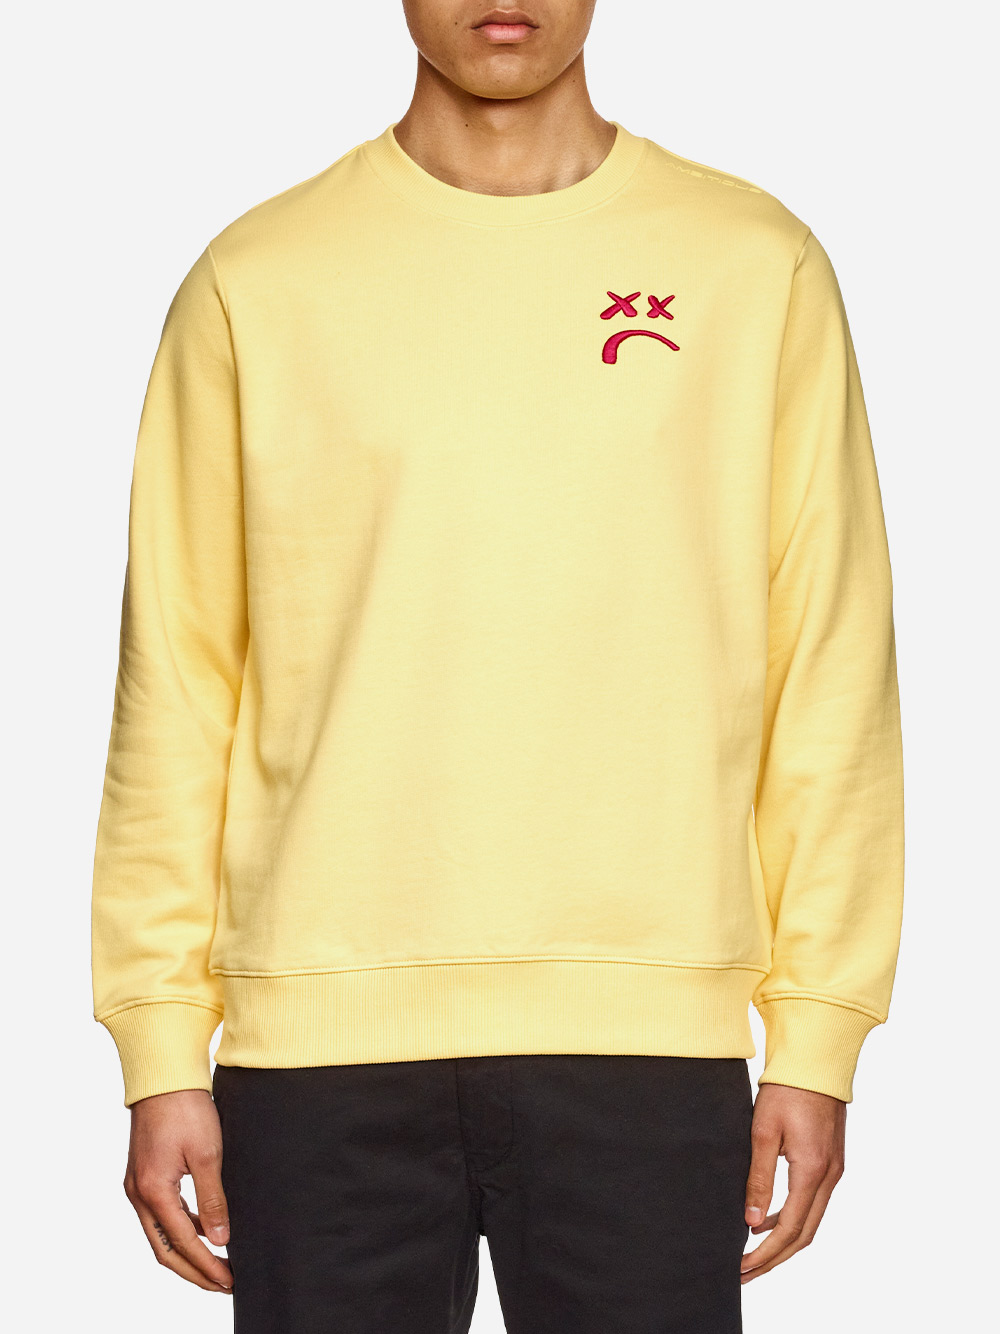 Yellow Embroidered Sweater